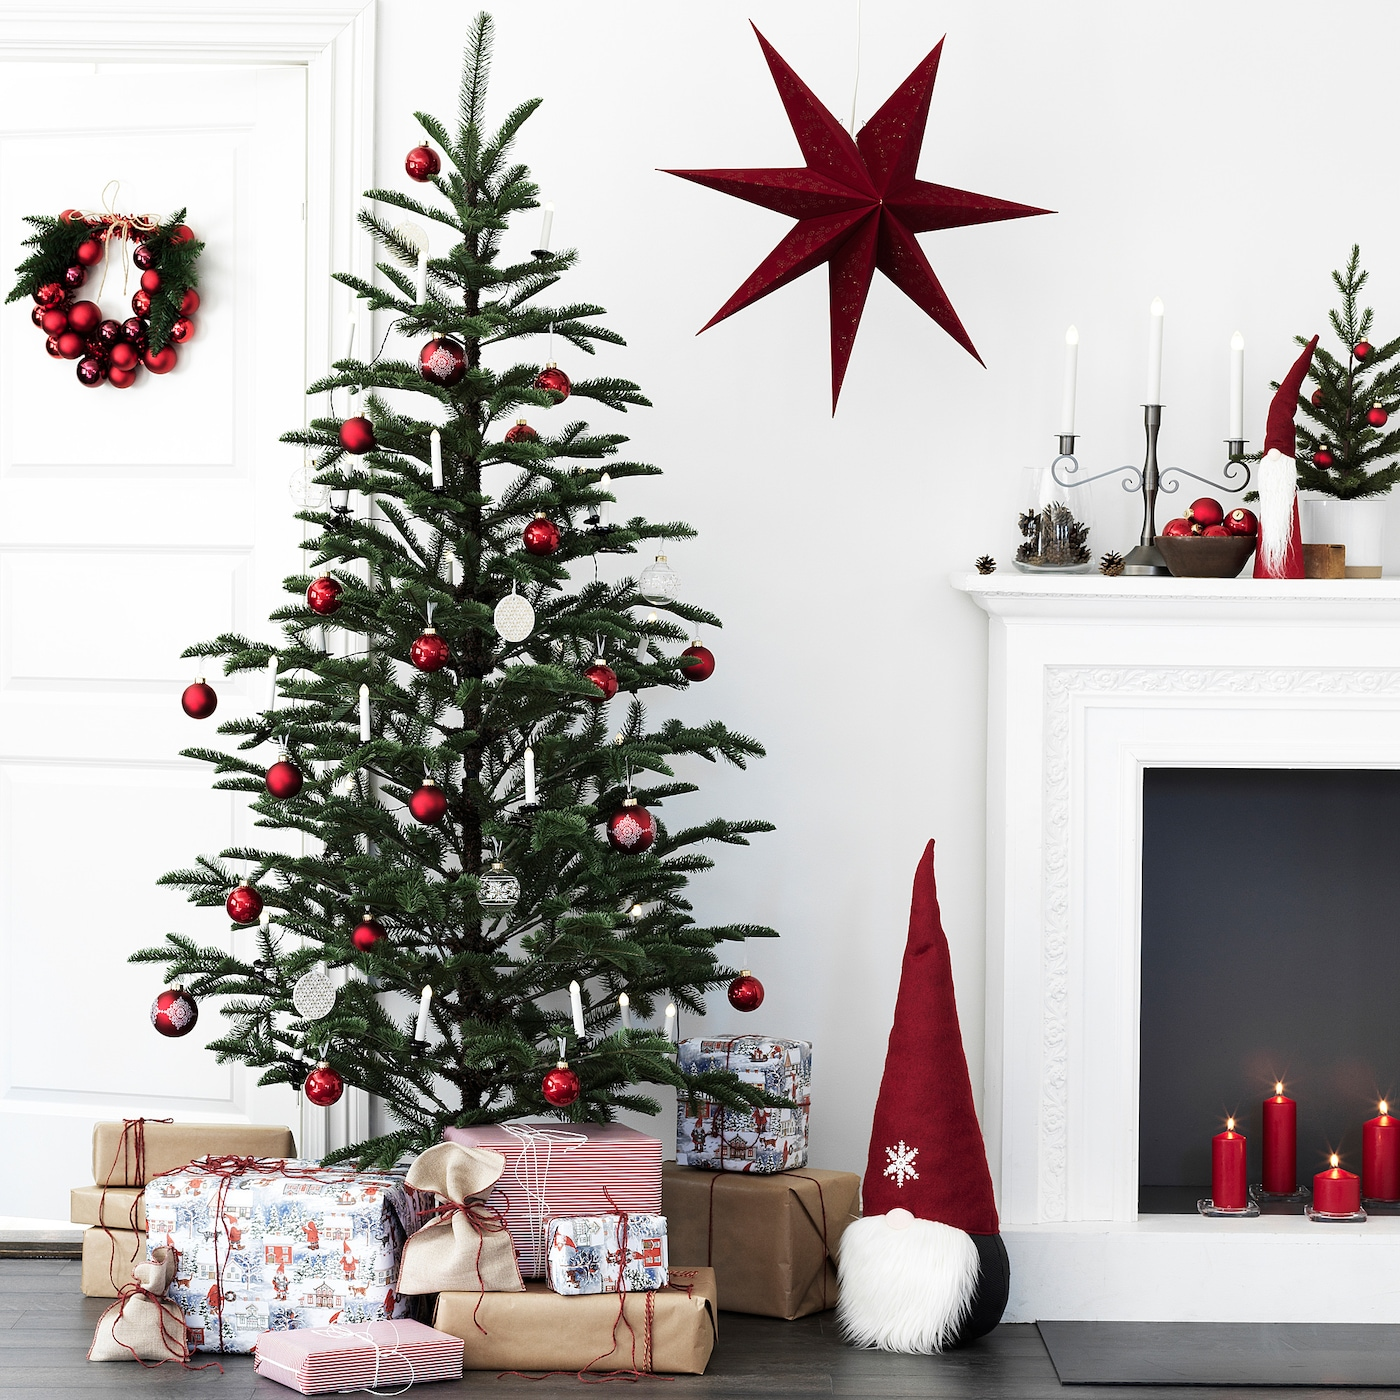 Vinter 2020 Artificial Plant Indoor Outdoor Christmas Tree Green 82 210 Cm Ikea Download all photos and use them even for commercial projects. vinter 2020 artificial plant indoor outdoor christmas tree green 82 210 cm